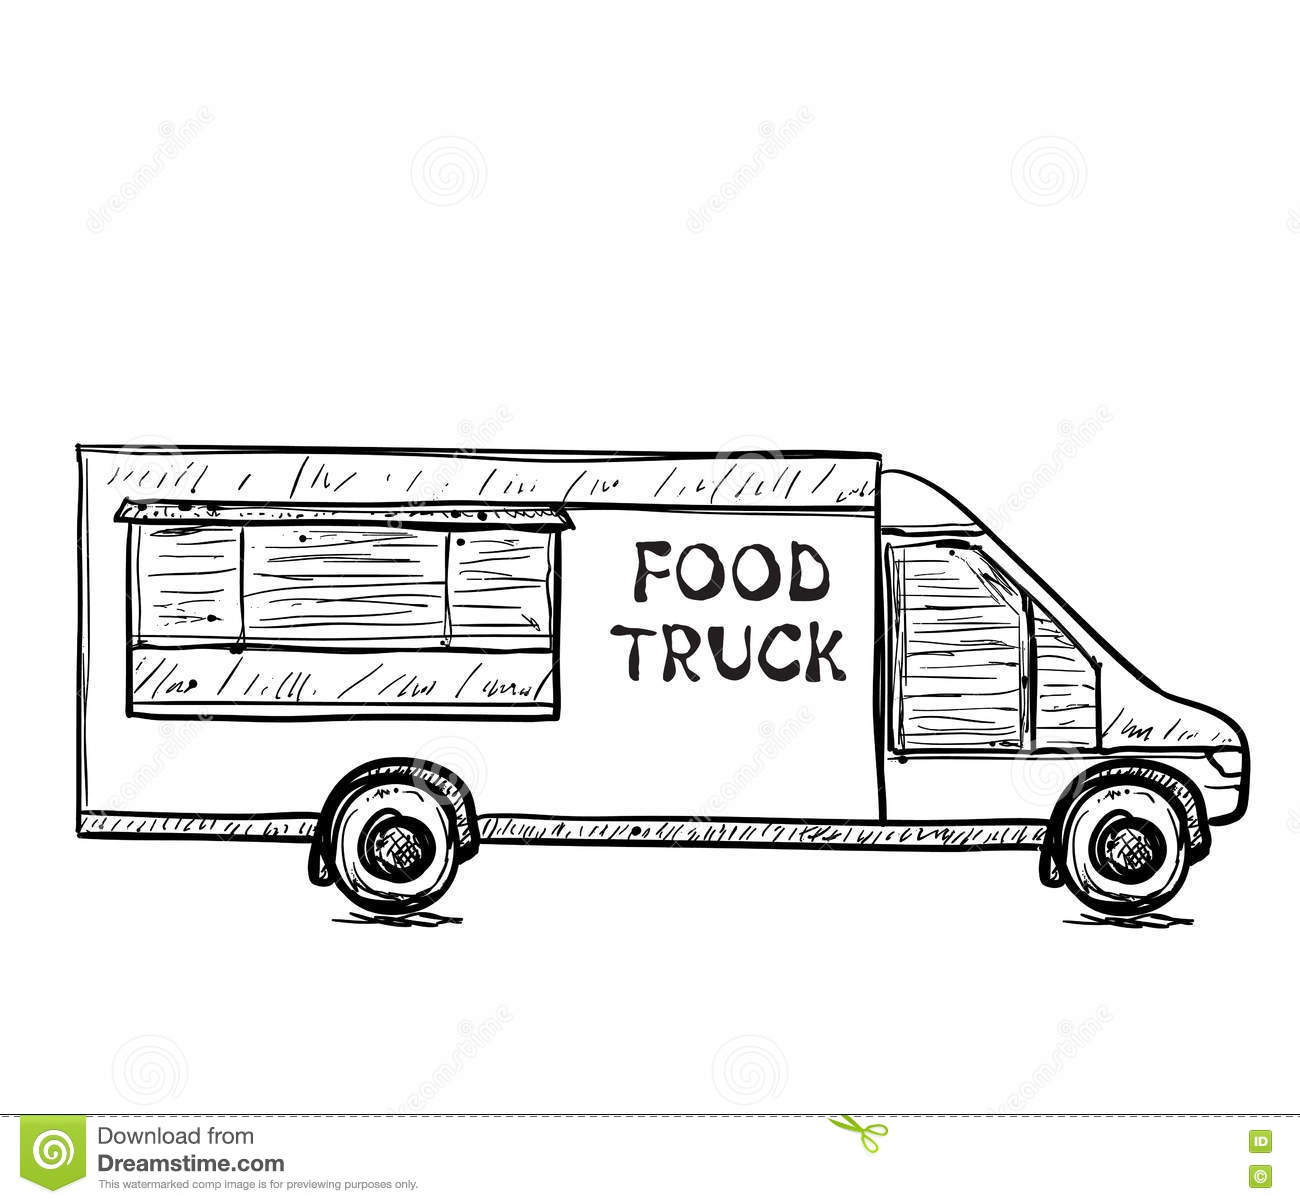 Food Truck Plumbing Diagram Com